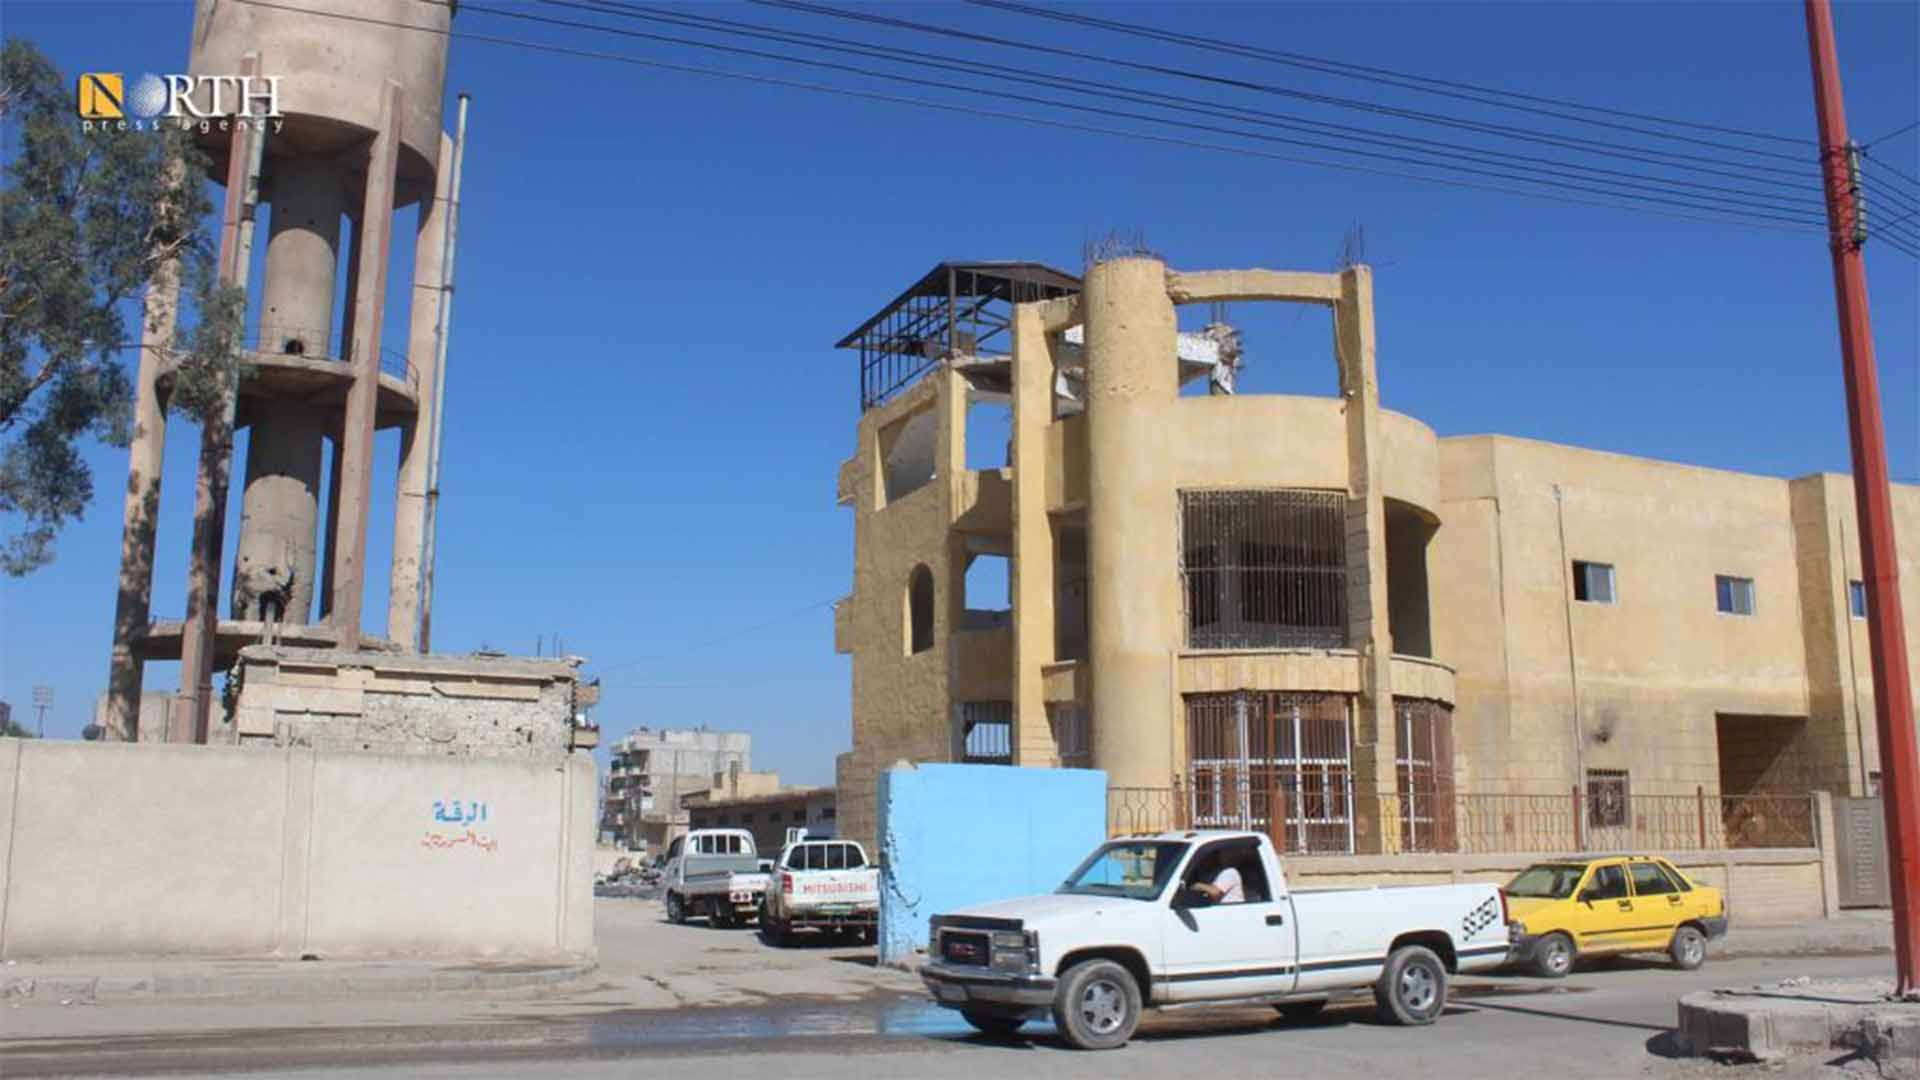 Water tower in Raqqa and its countryside – North Press